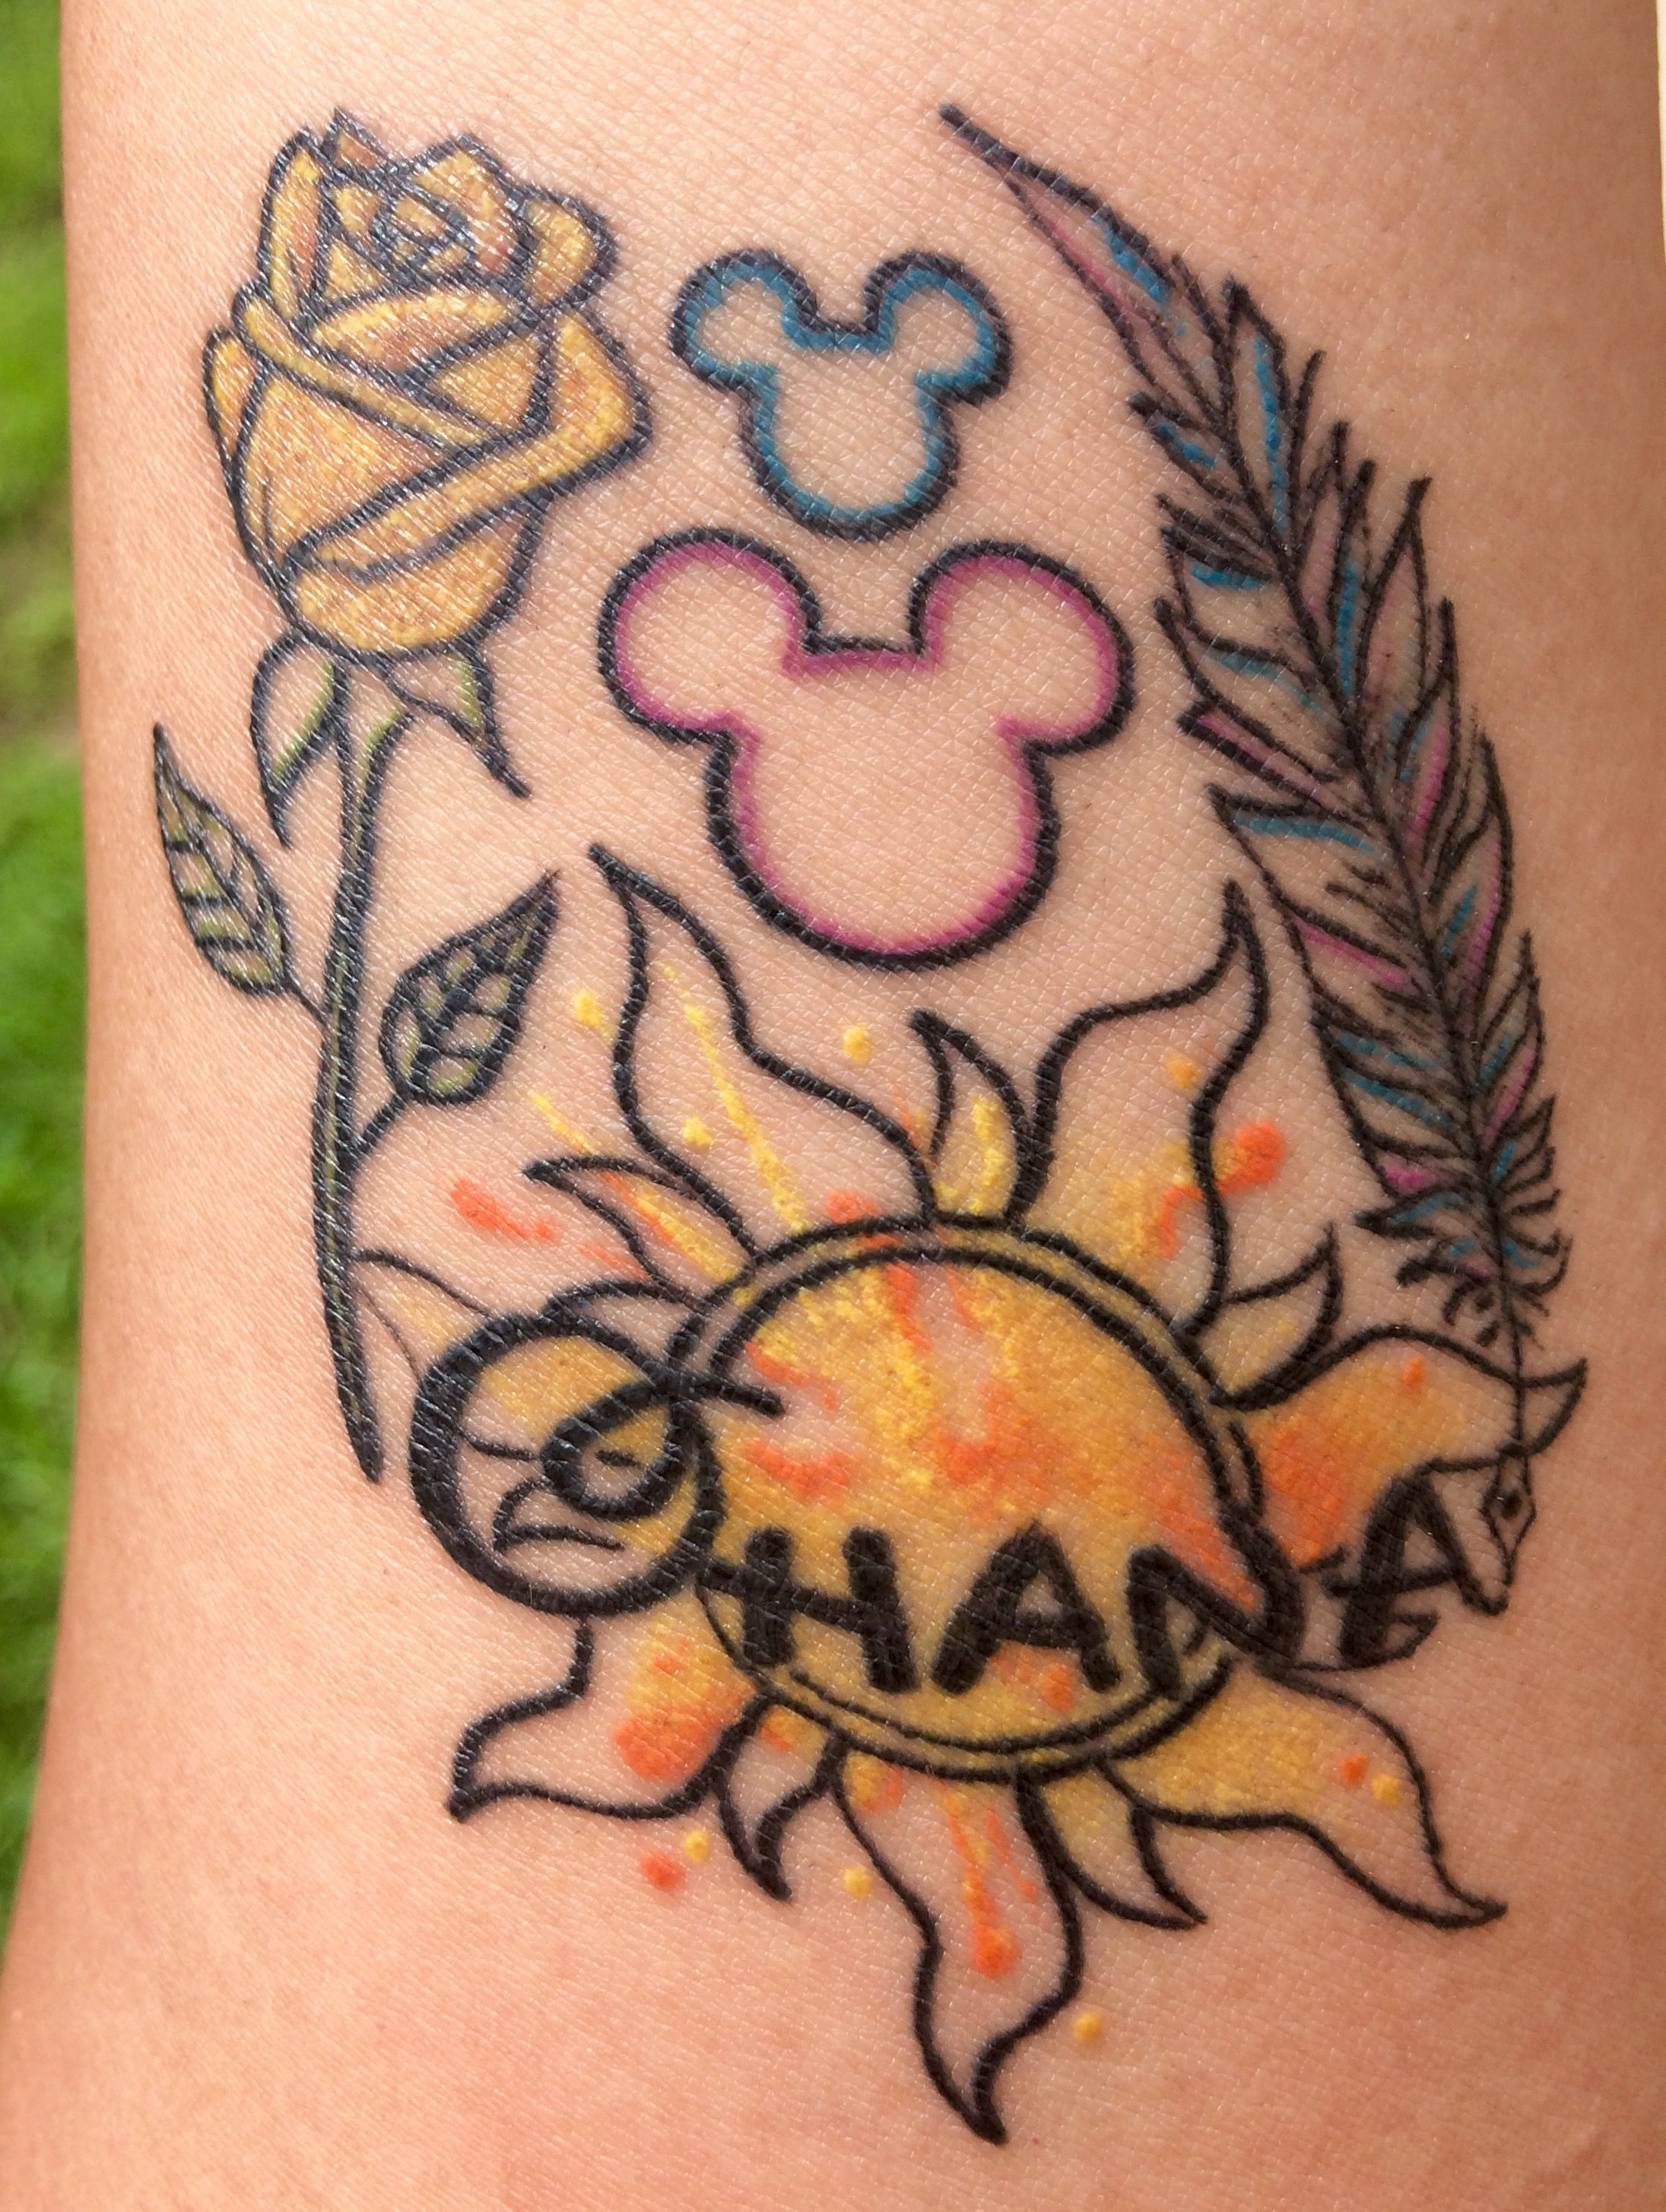 Yellow Rose Rapunzel Tangled Sun Ohana Disney Mickeys O Feather Quill Pen Watercolor Family Tattoo Tangled Tattoo Disney Tattoos Family Tattoos